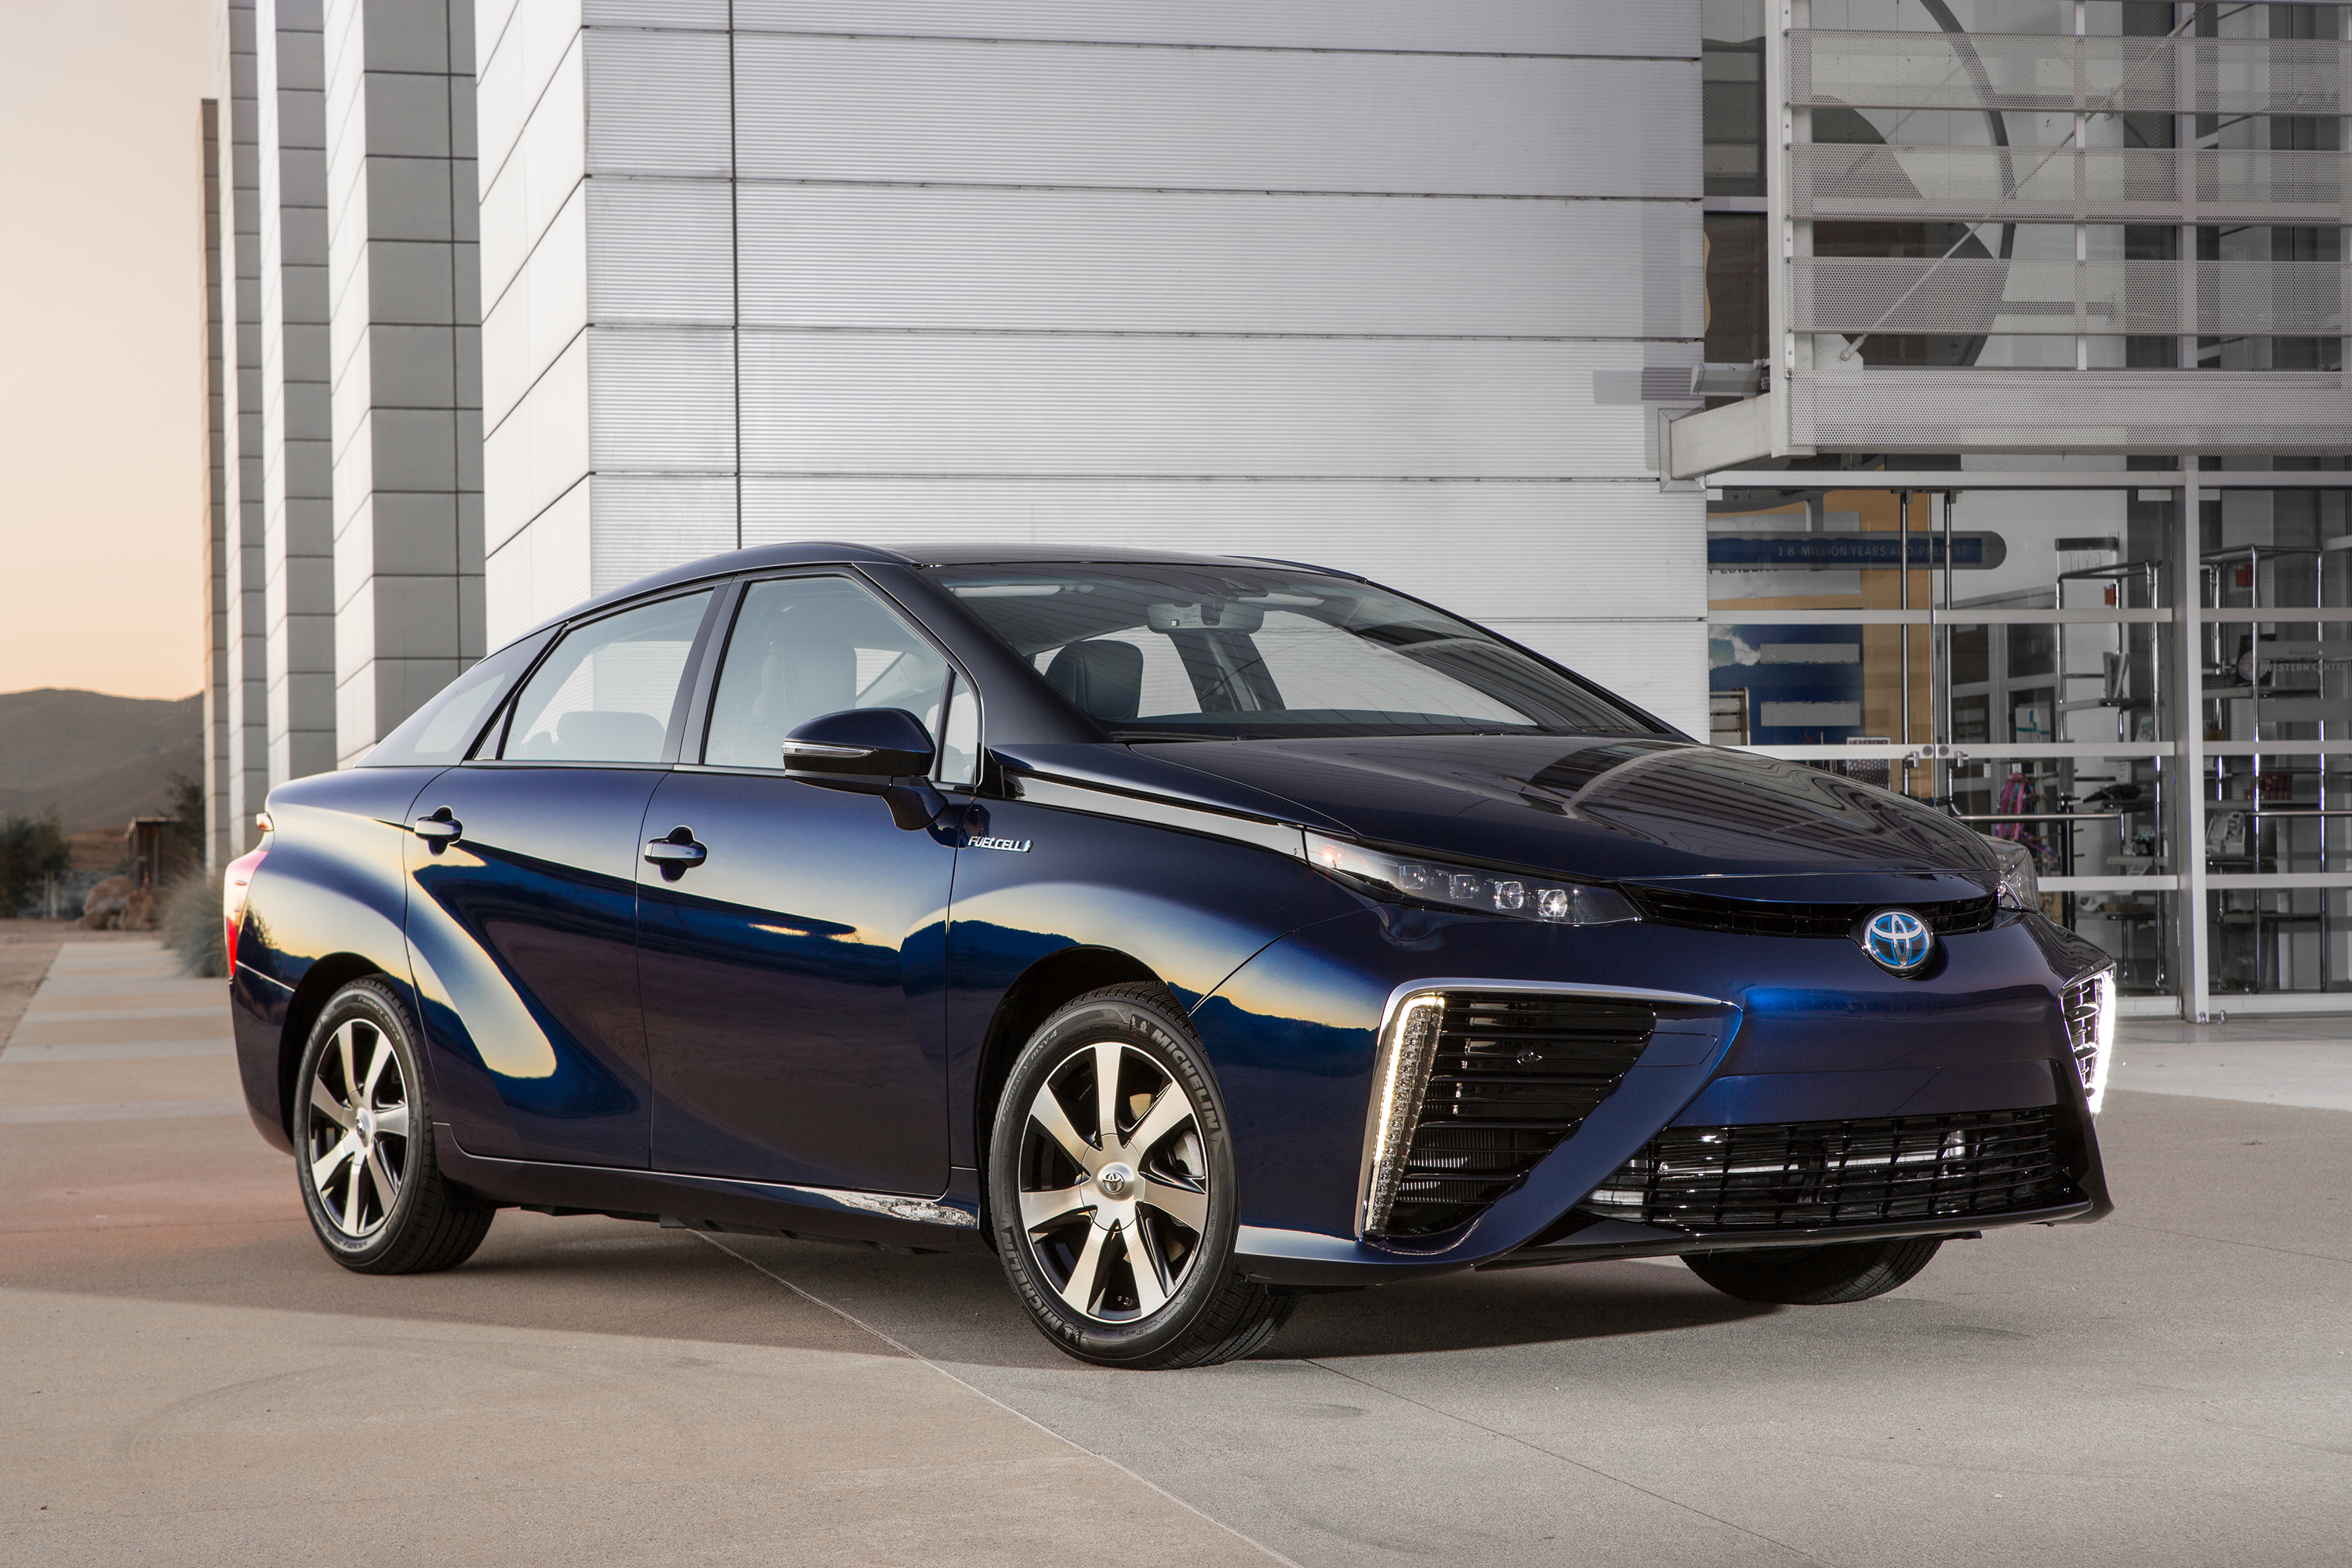 But The Mirai And Fcvs Like It Might Not Be A Local Anomaly For Long Toyota Alternative Fuel Compeor Tesla Has Made Its Patents Available To